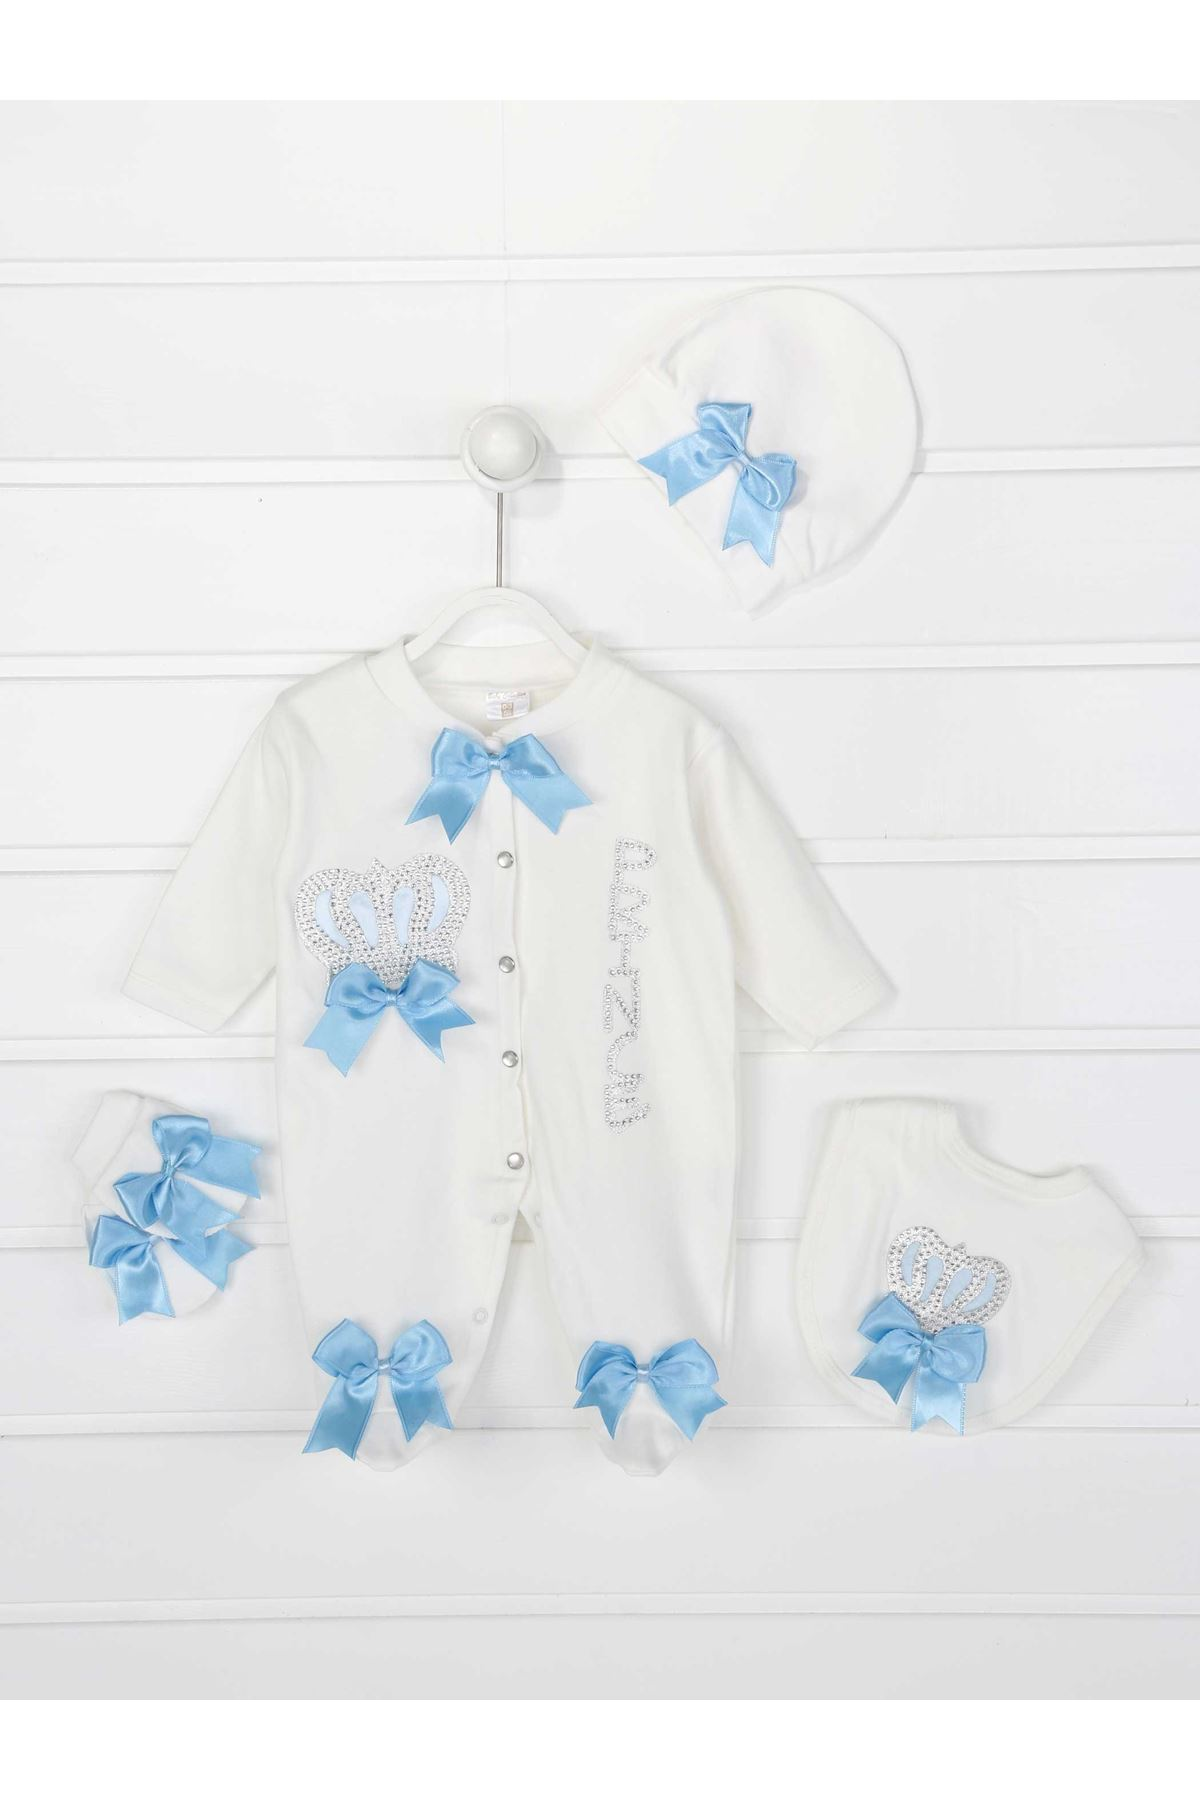 Blue King Crowned Prince Boy Baby 4 PCs Rompers